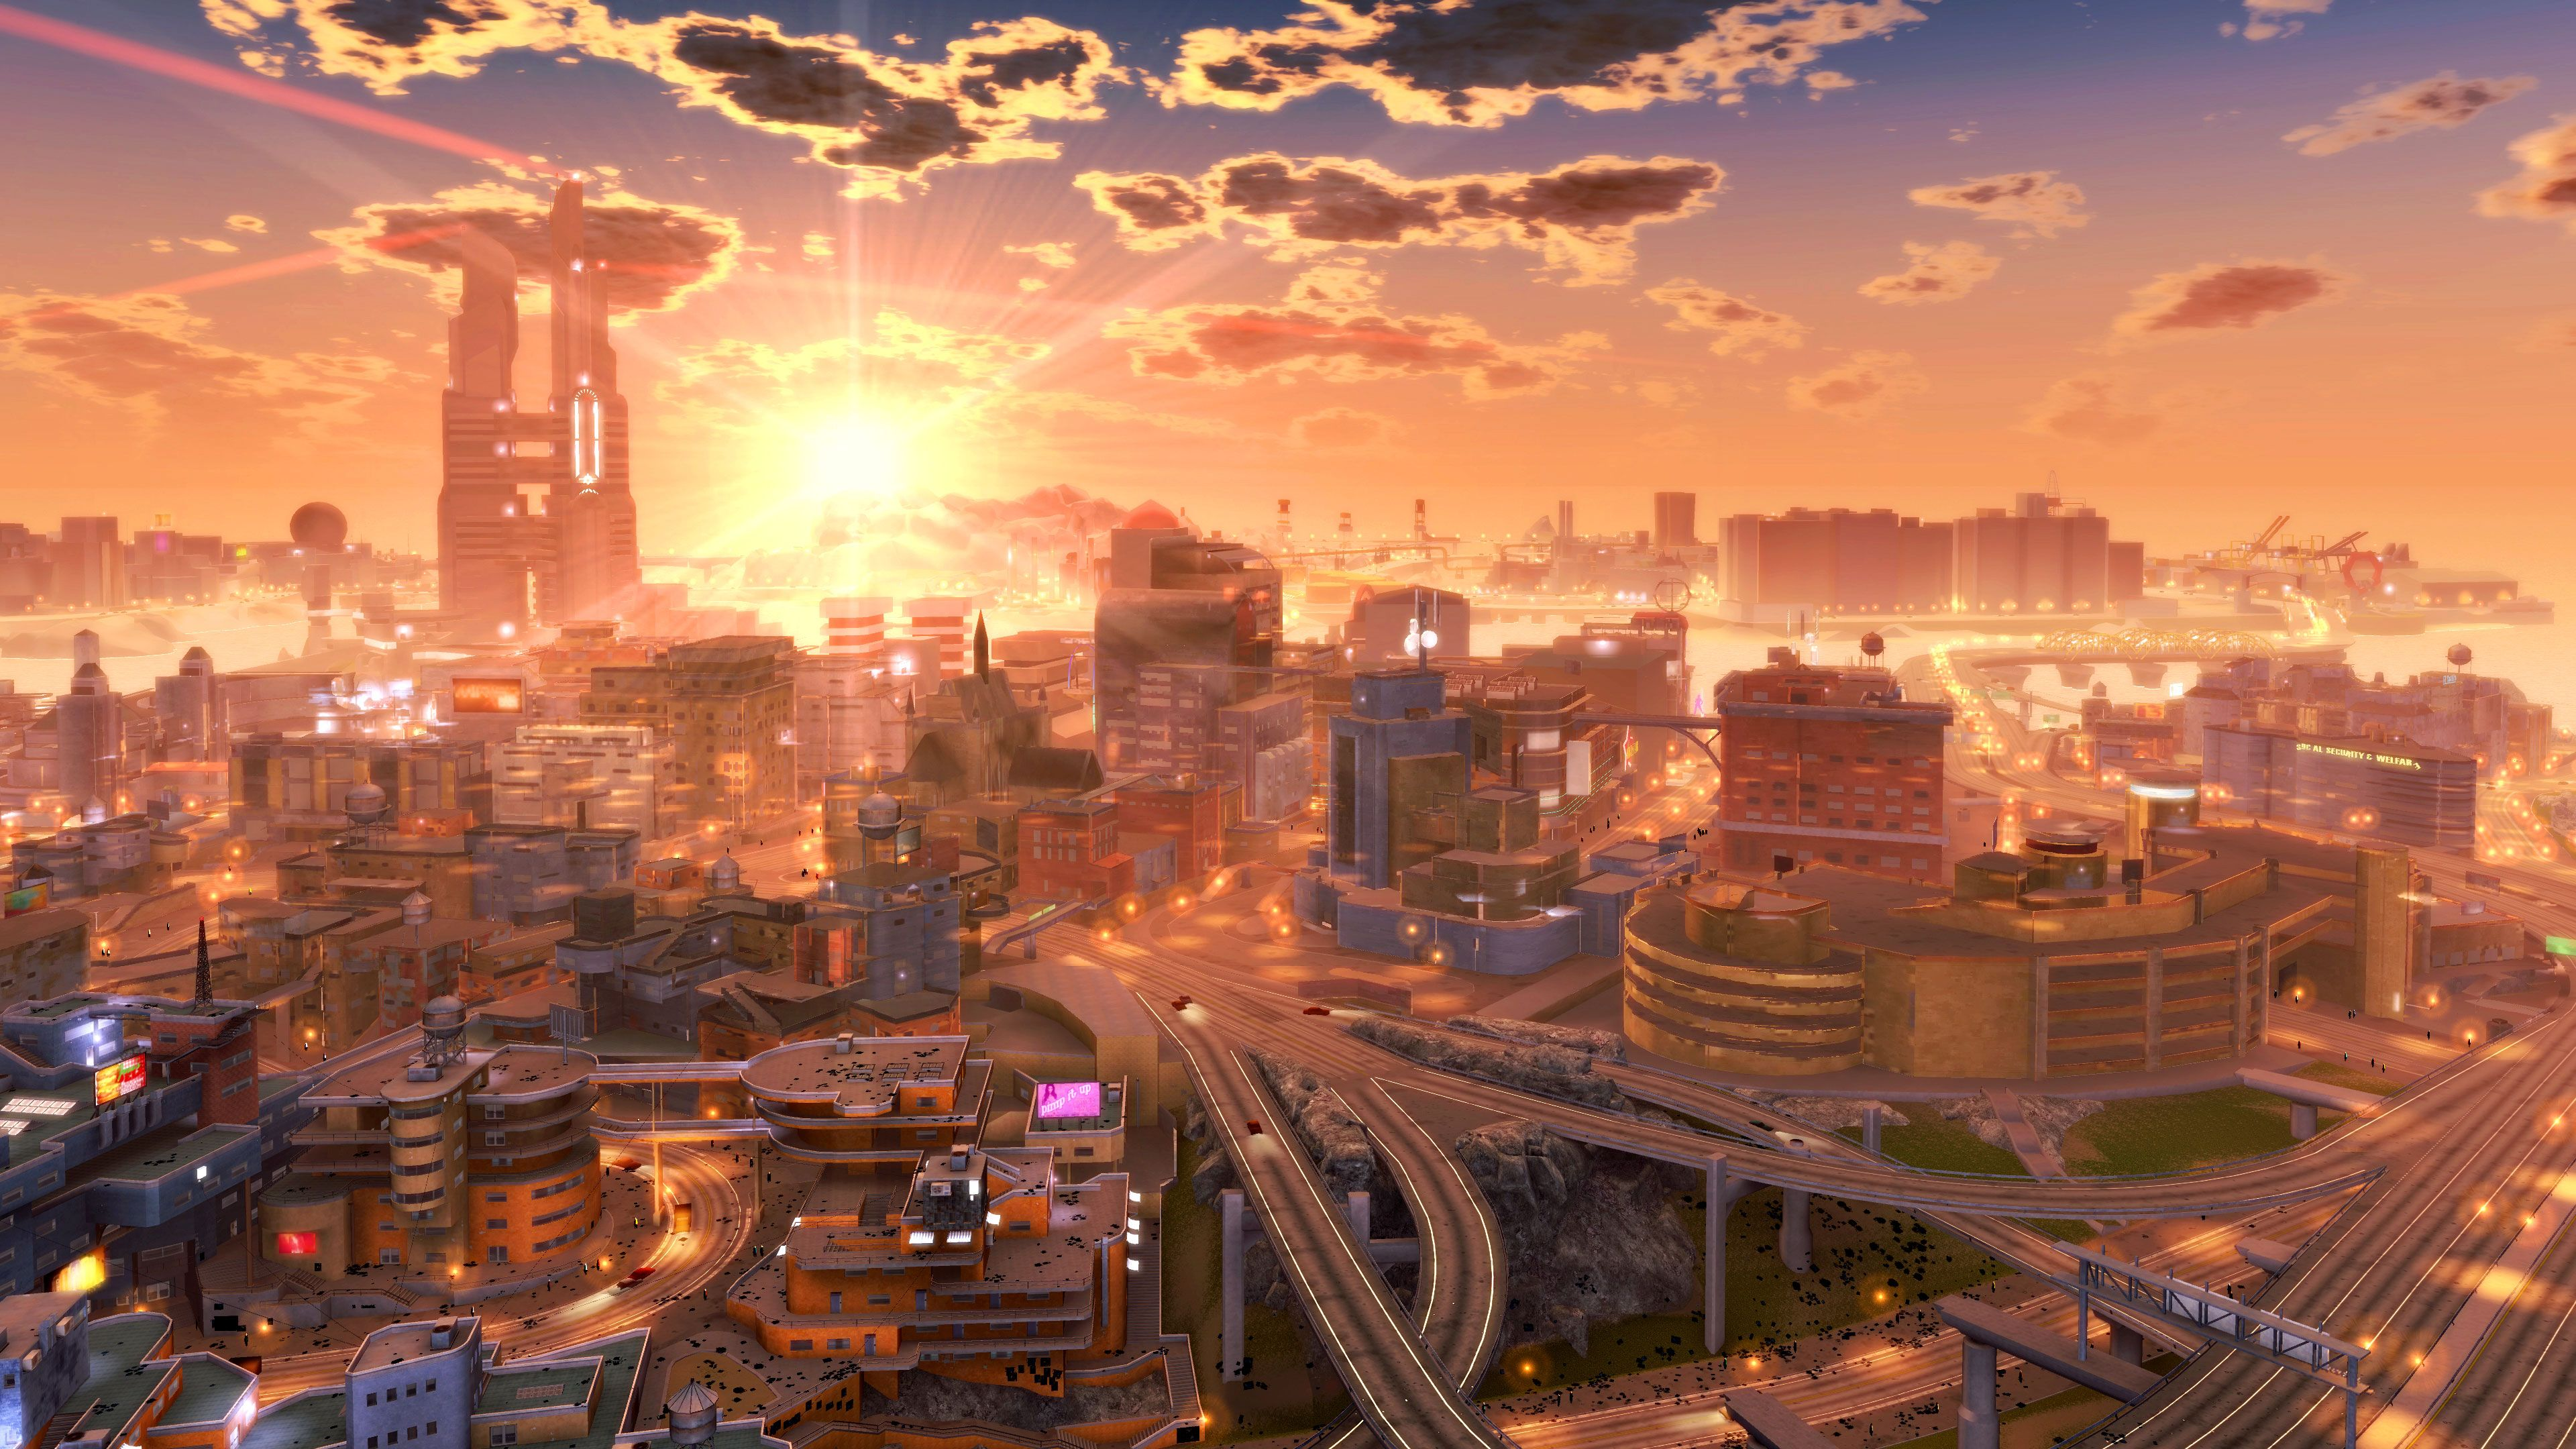 1680x1050 Anime City Artwork Futuristic HD Wallpaper